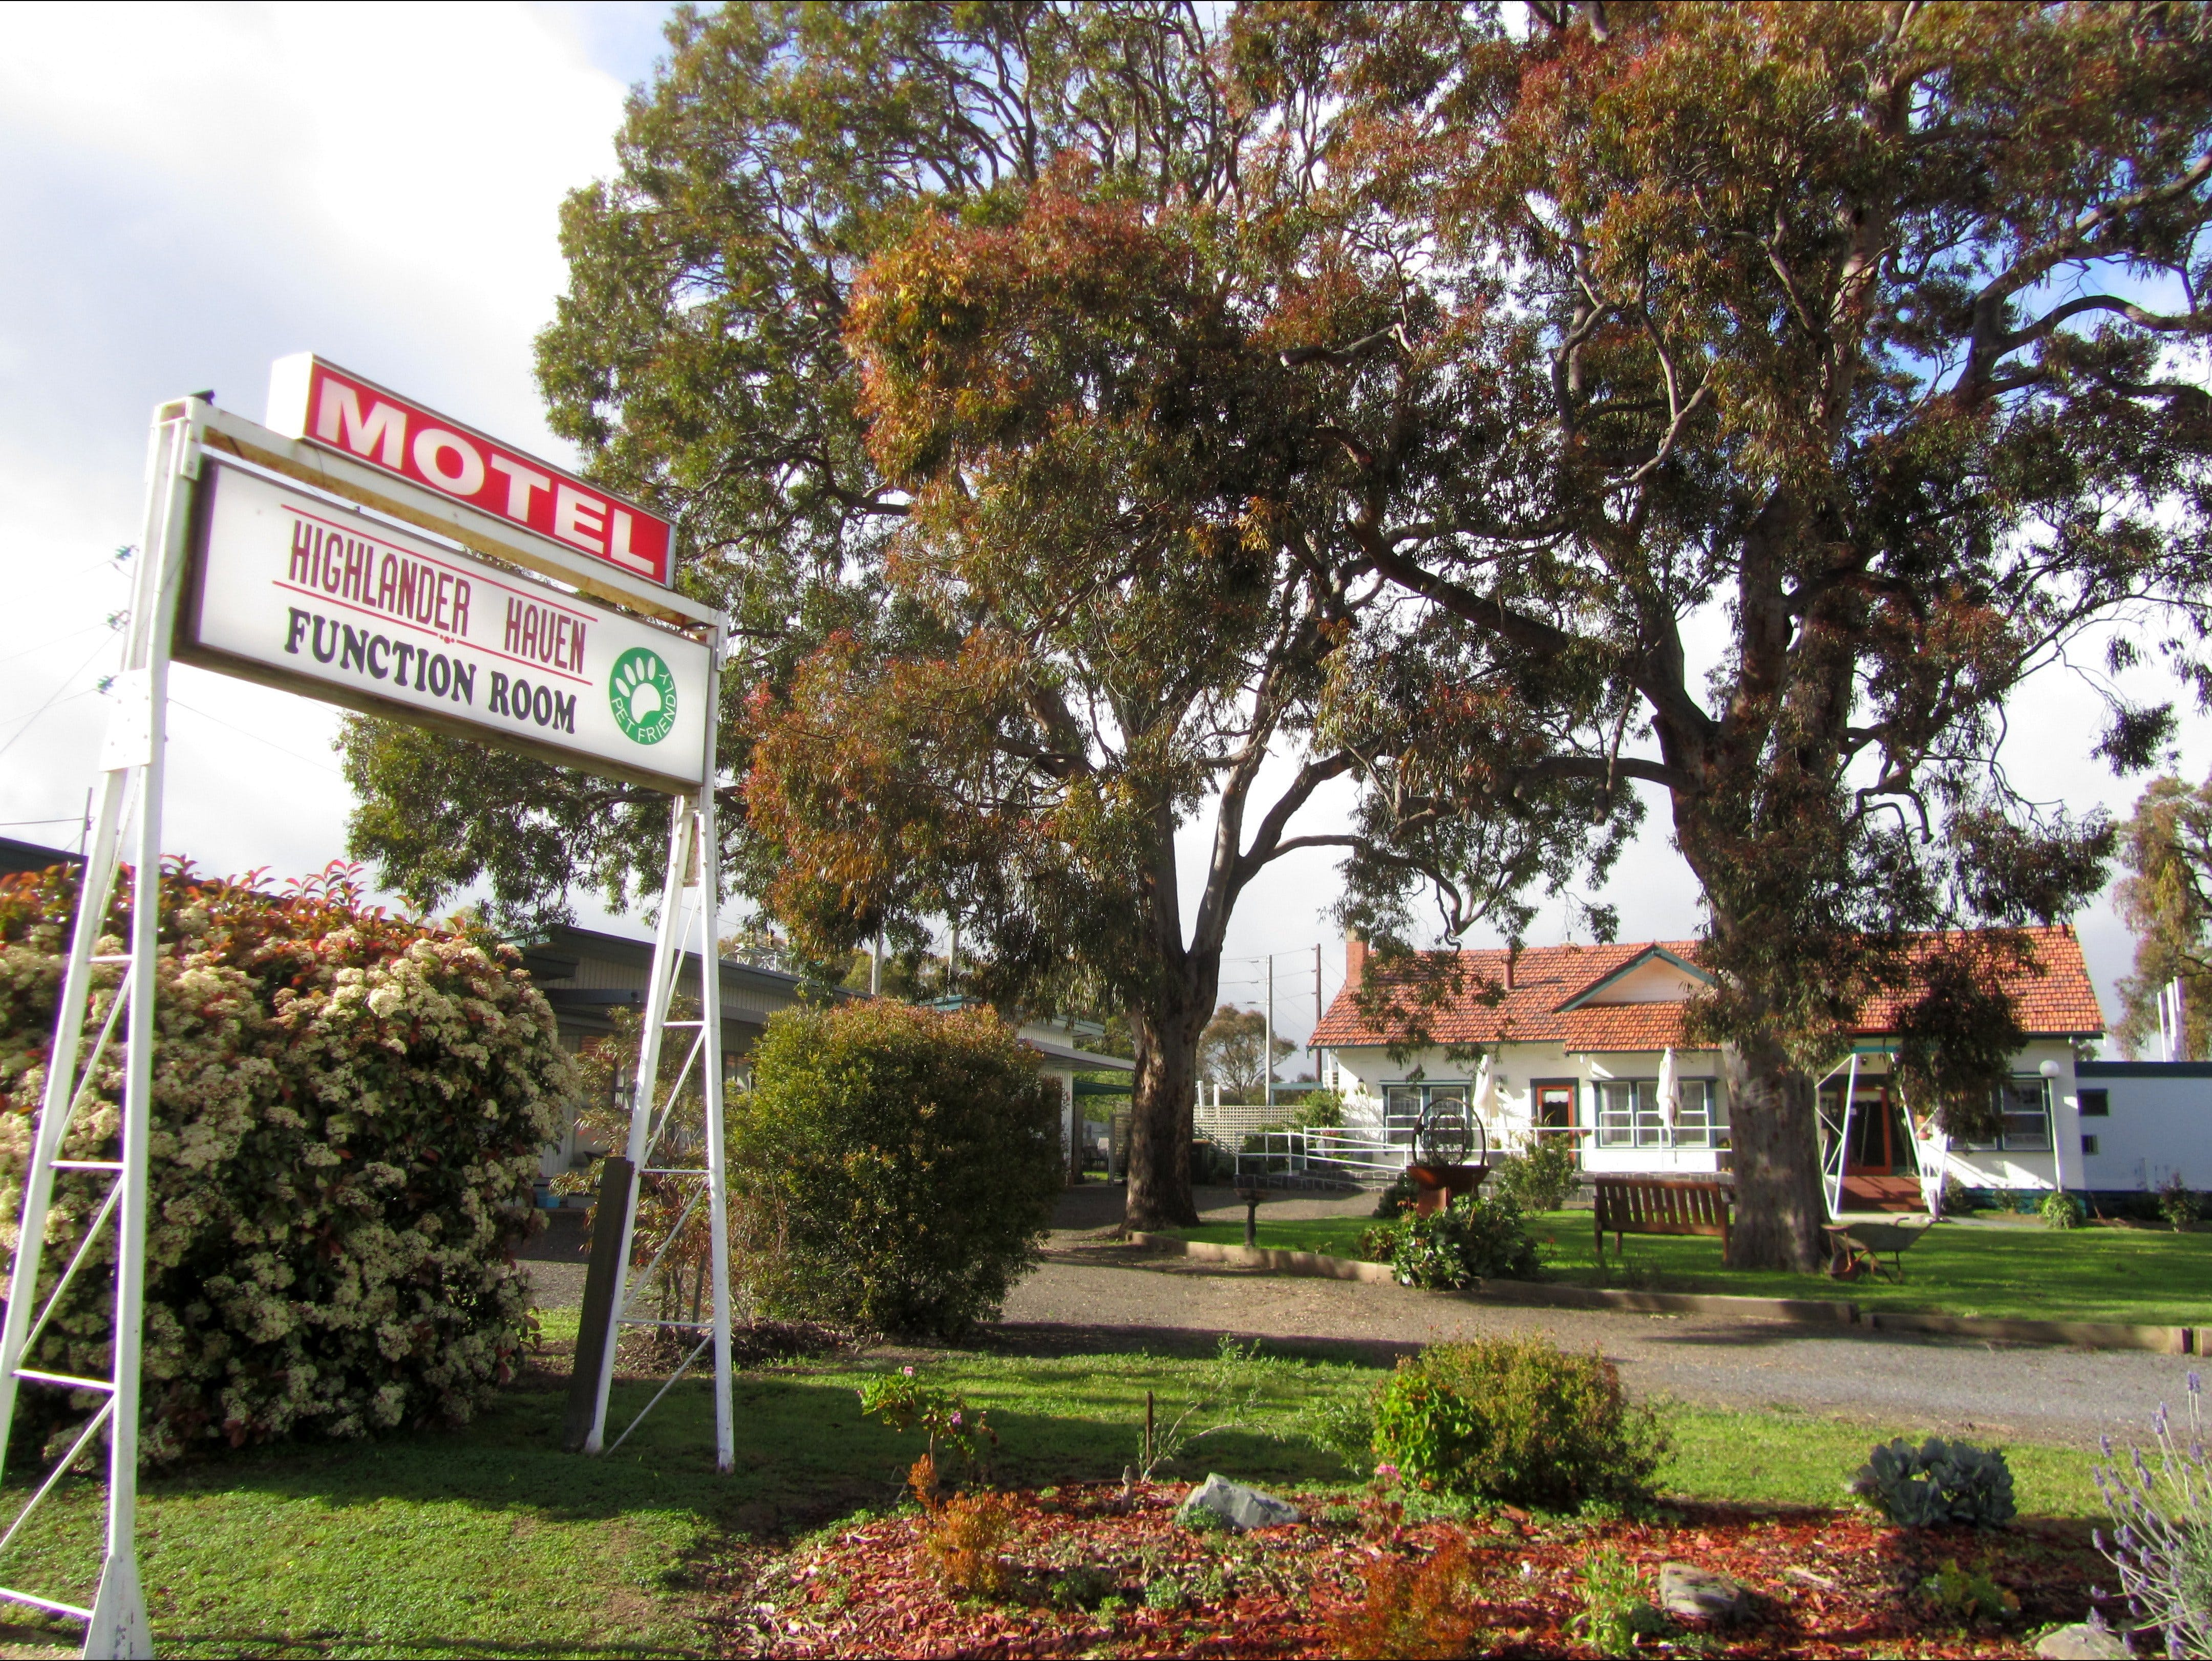 Highlander Haven Motel and Function Centre - Phillip Island Accommodation